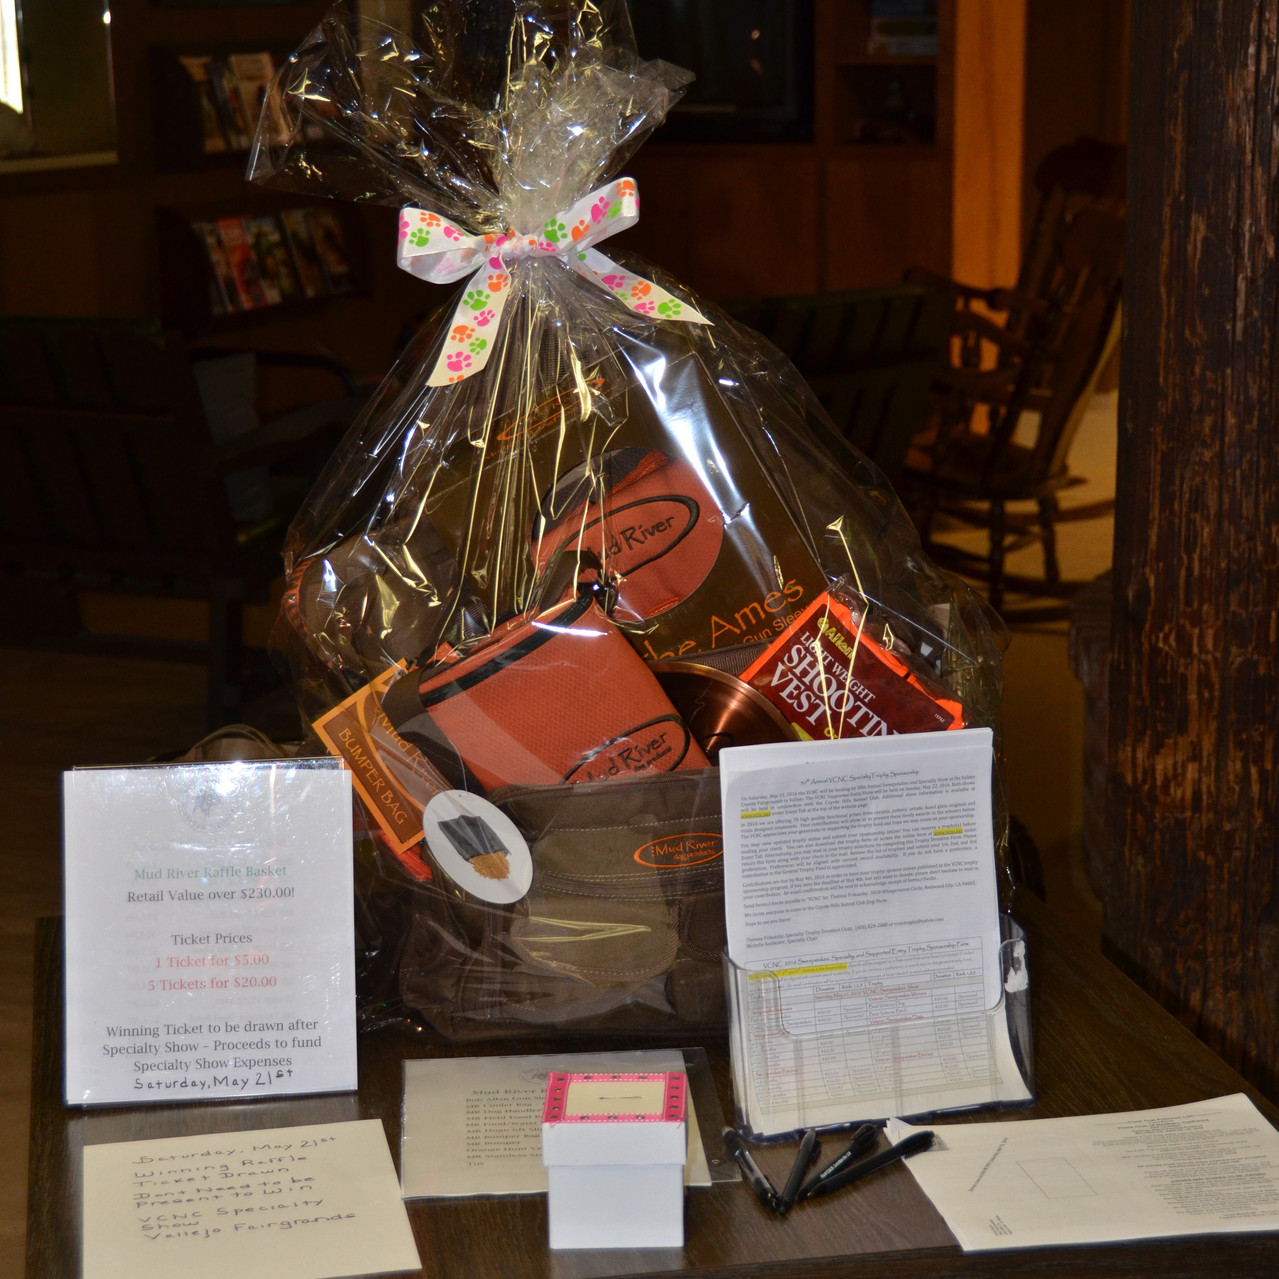 Specialty event's ruffle grand prize